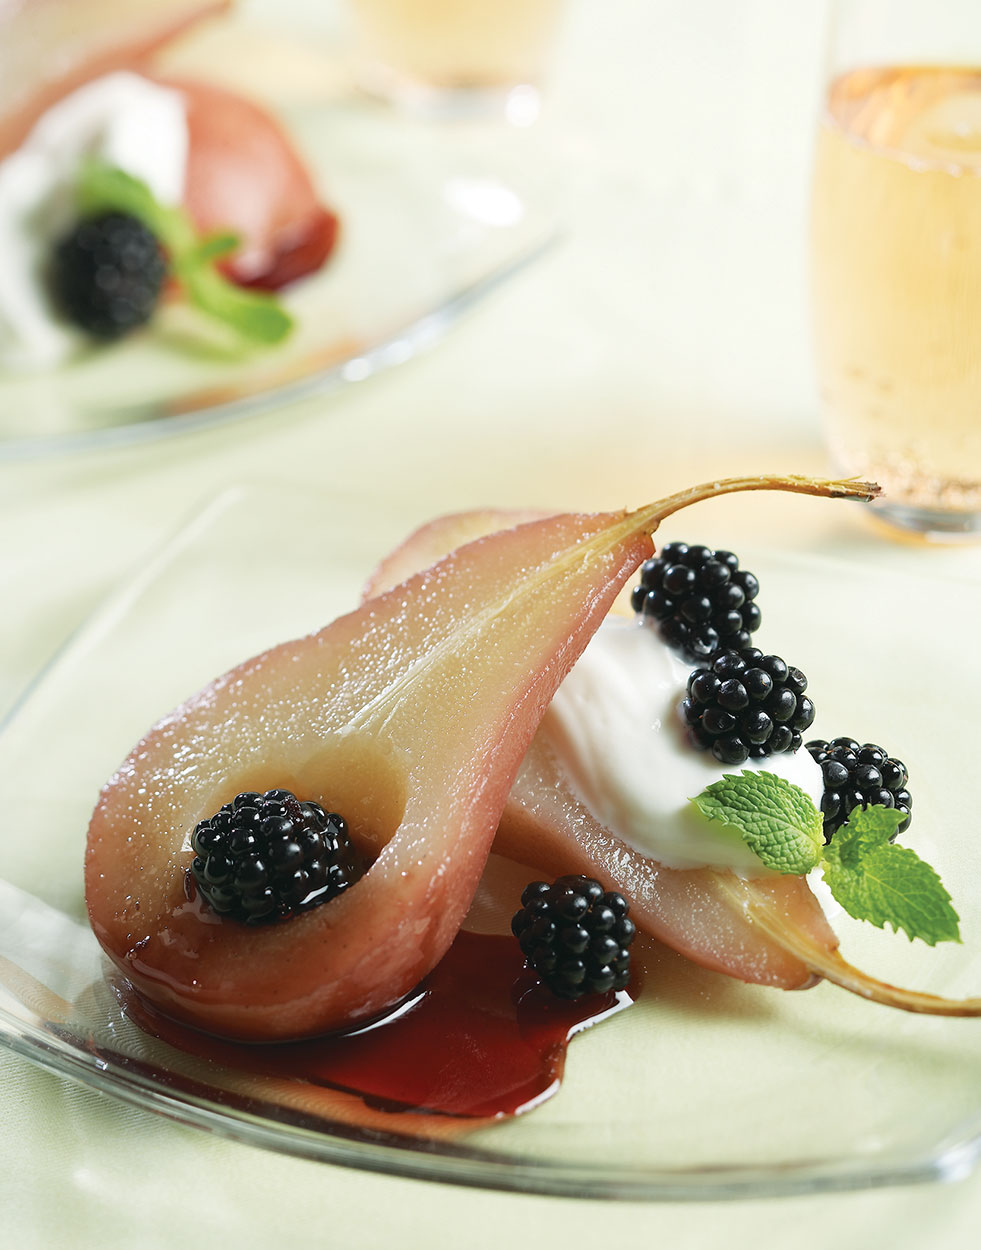 Wine-poached pears with vanilla-cinnamon sauce